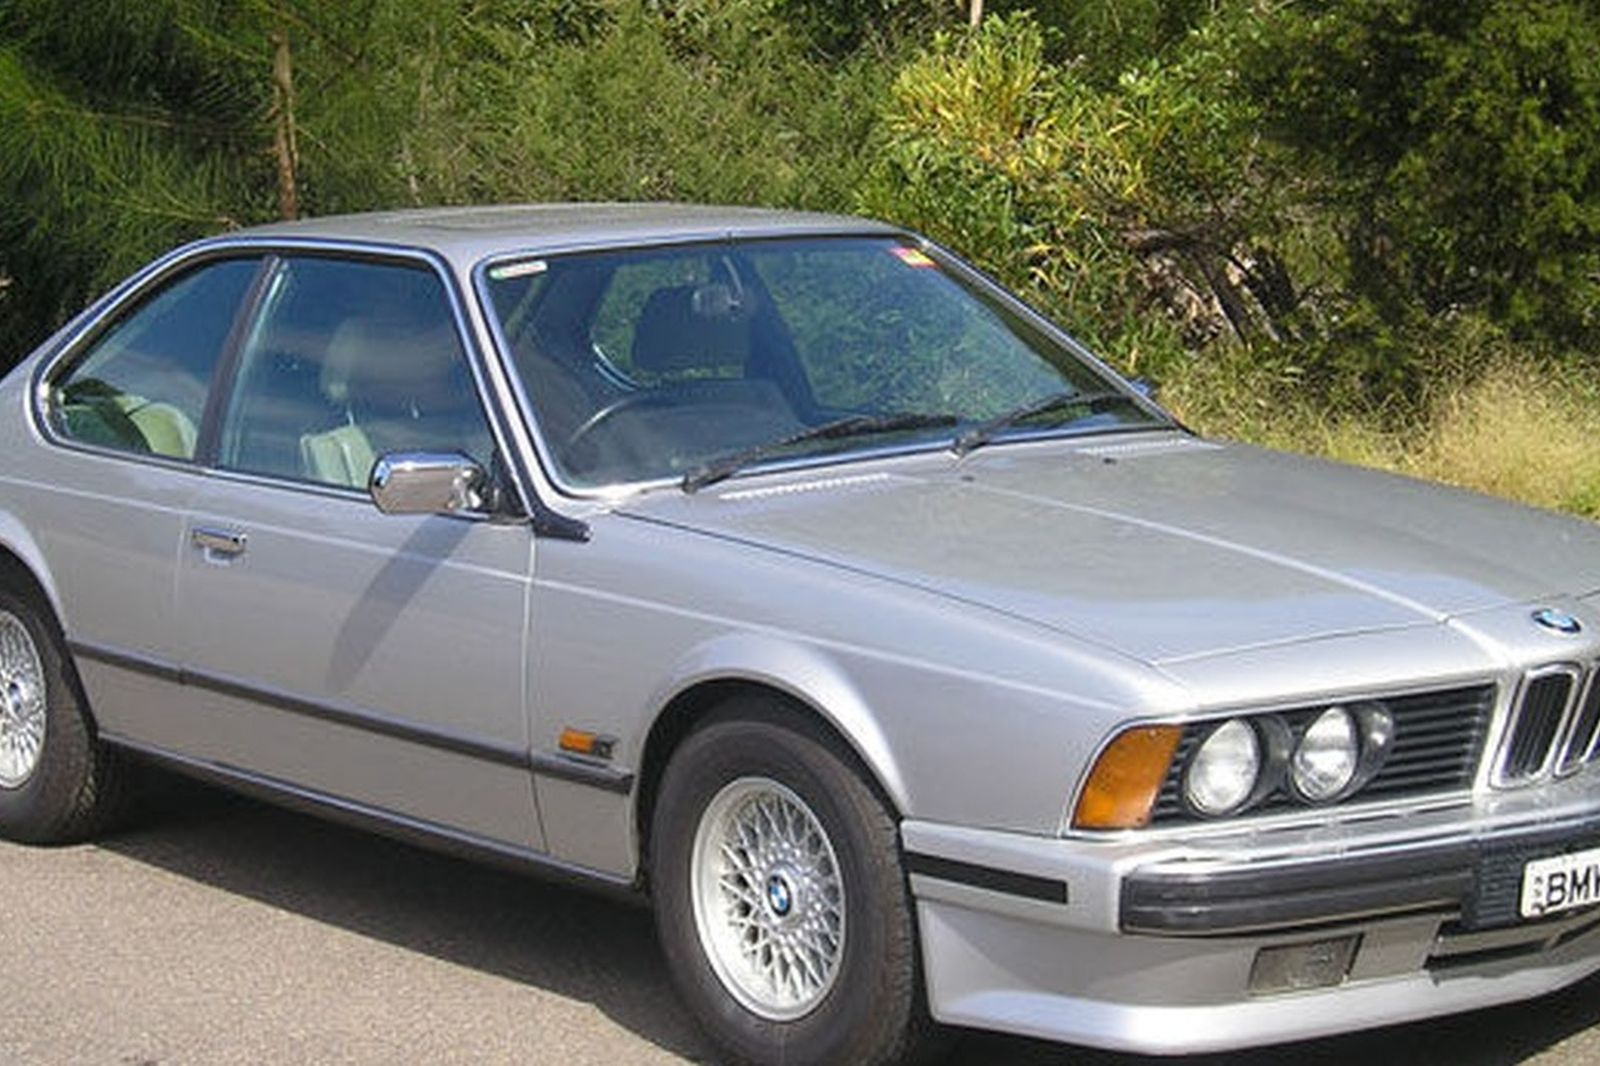 1983 bmw 635 csi coupe sold bmw 635 csi coupe auctions lot 26 shannons E24 633CSi at couponss.co